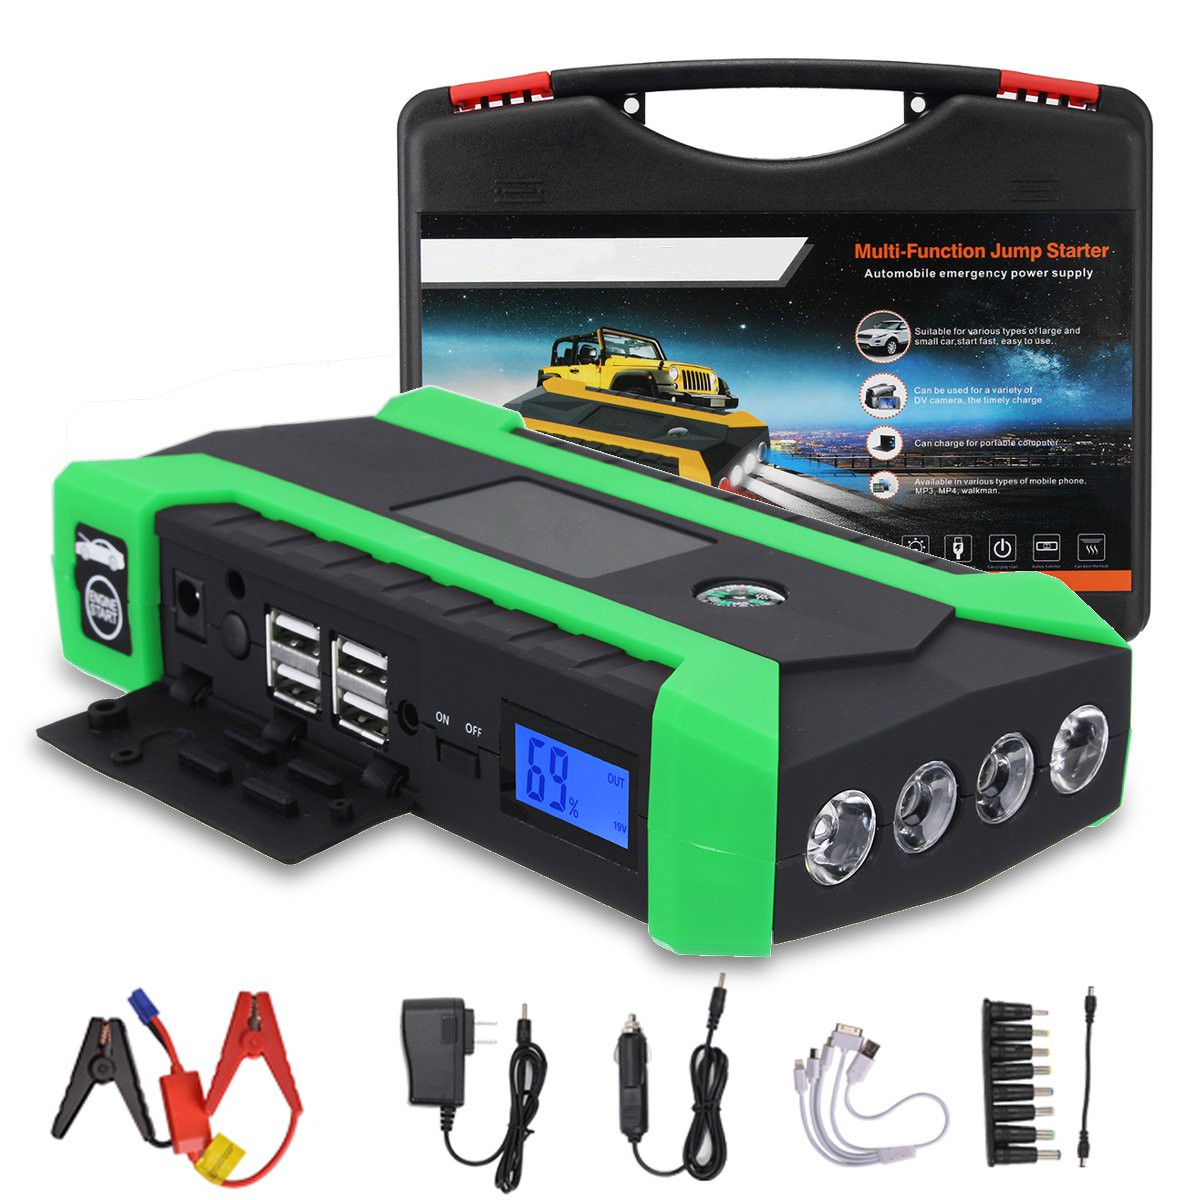 89800mAh 600A 12V 4USB Car Jump Starter Portable Car Battery Booster Charger Booster Power Bank Starting Device Car